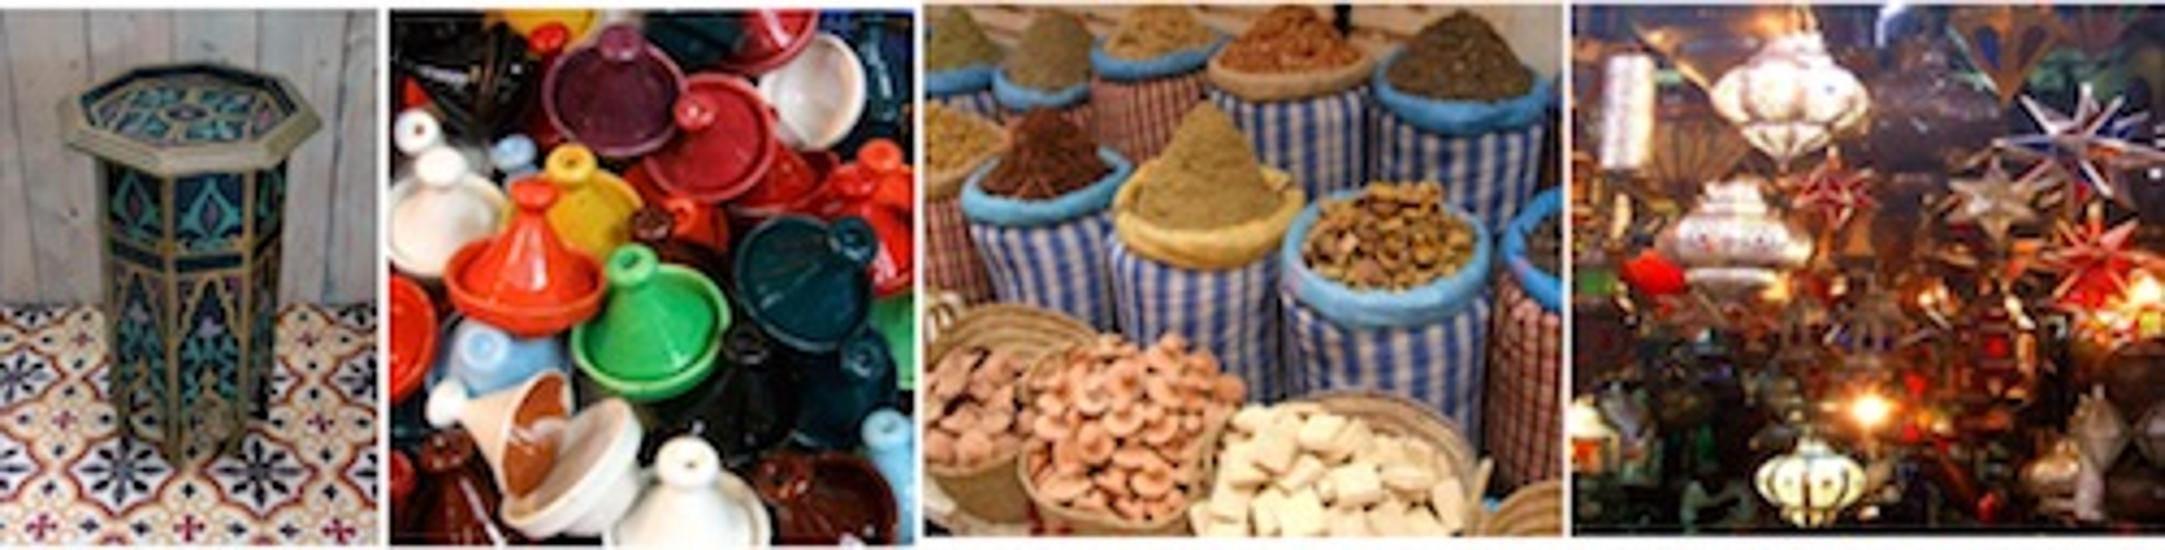 Moroccan Days, Central Market Hall, 12 - 14 April